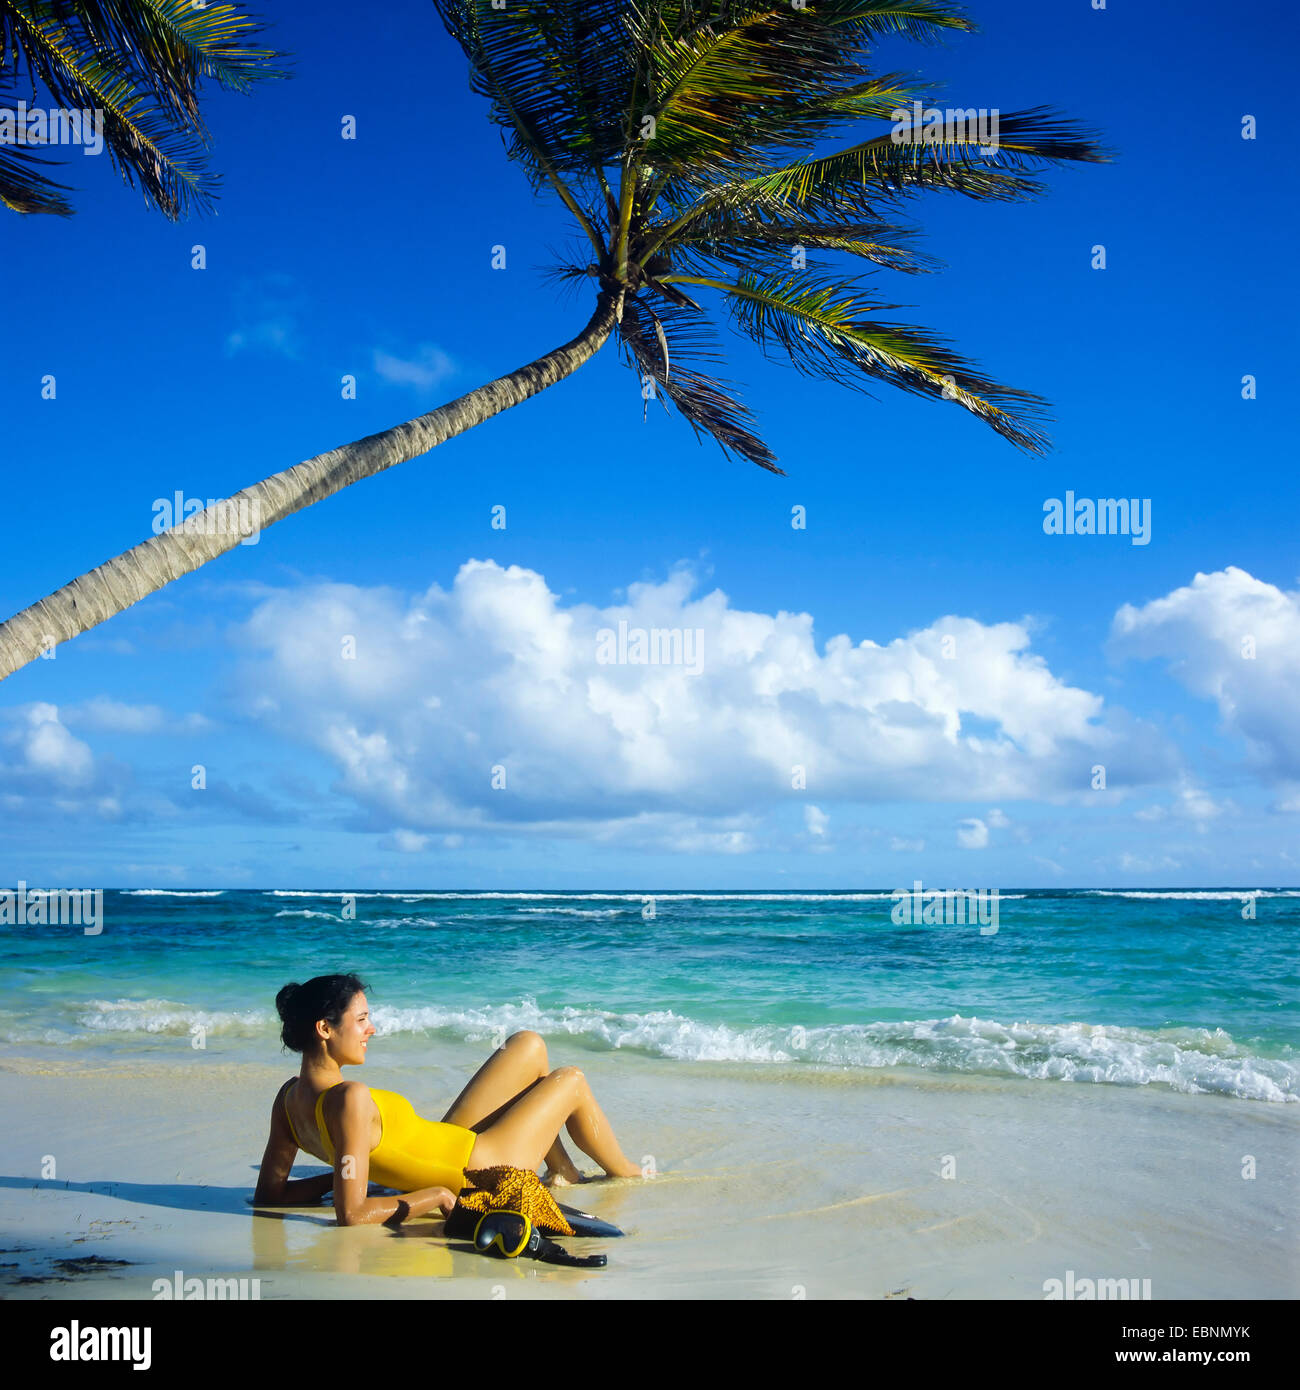 Caribbean Beach: Young Woman Sunbathing On Caribbean Beach, Guadeloupe